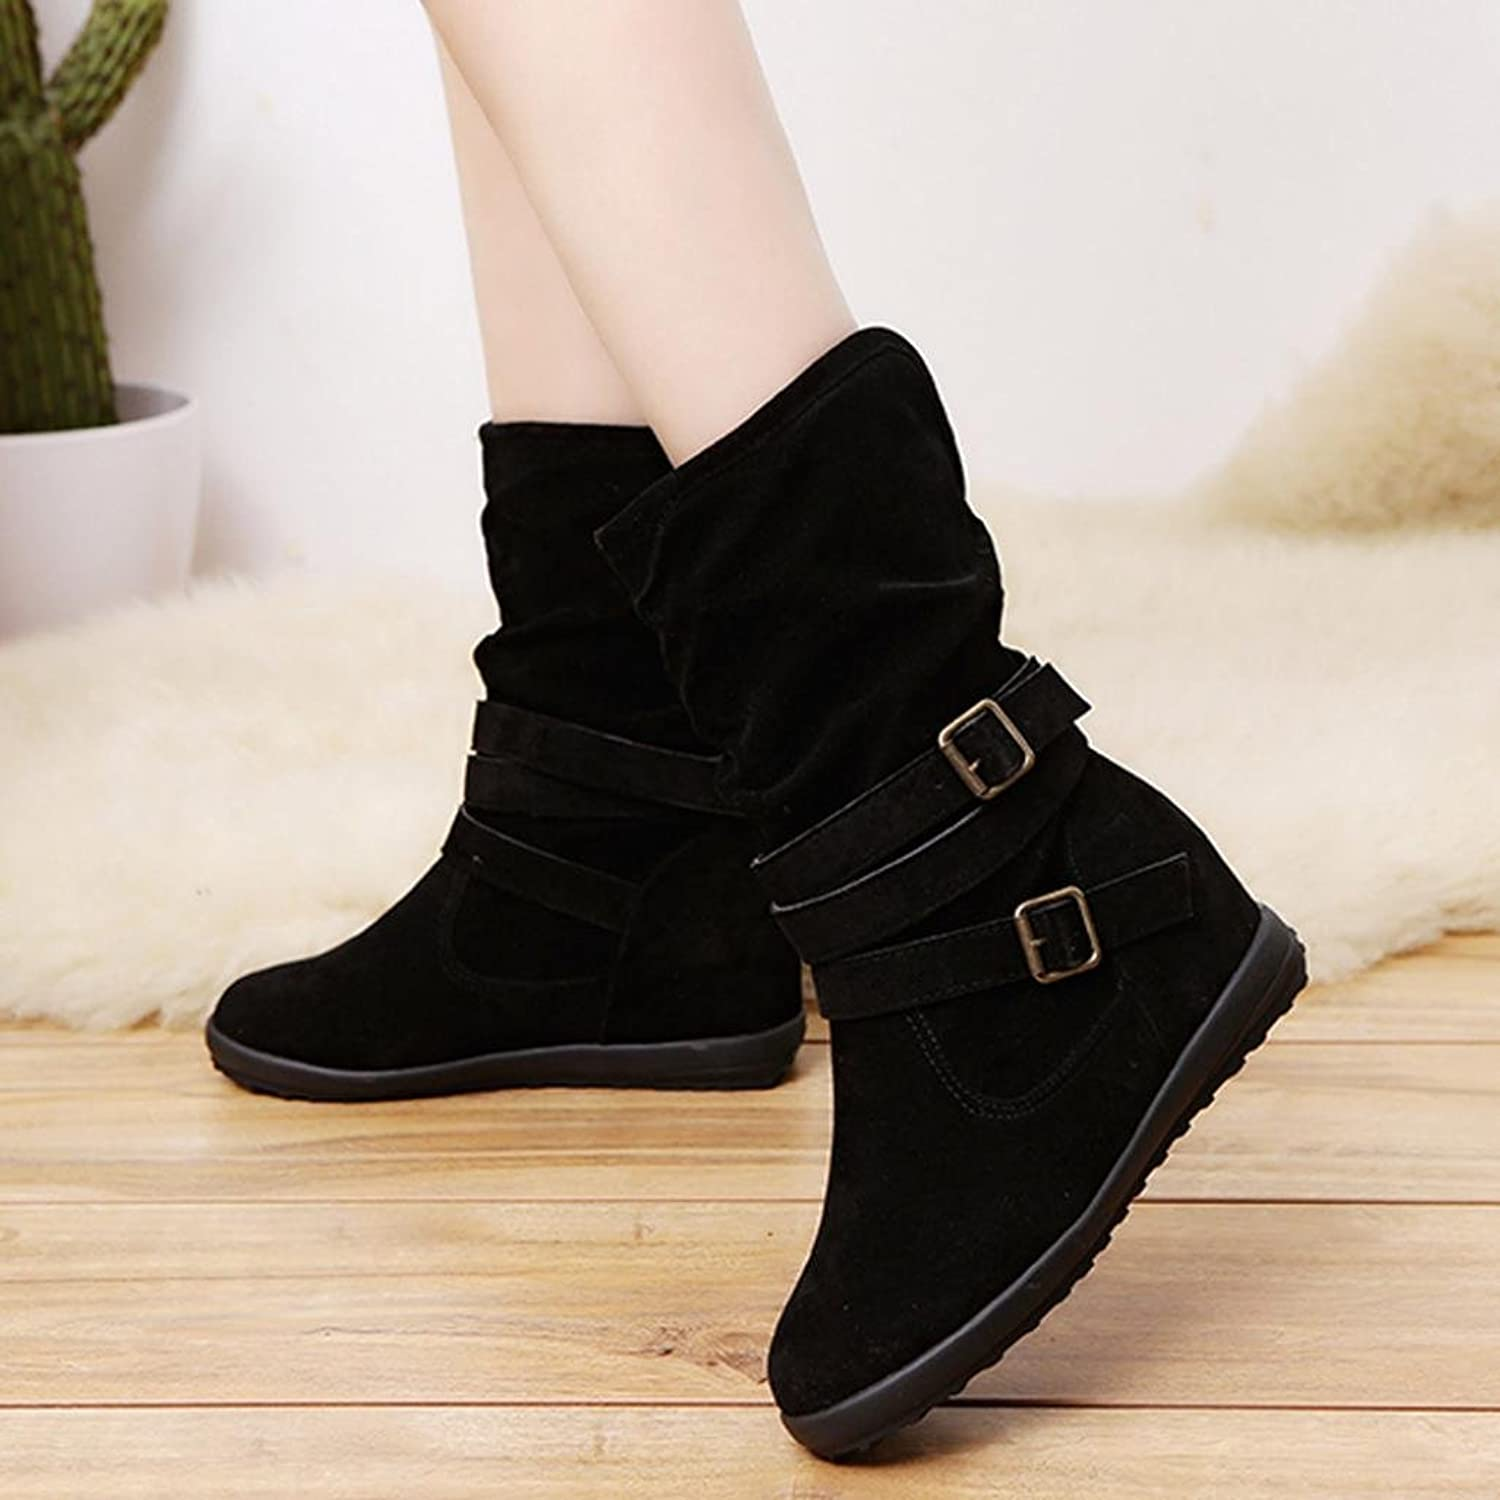 Ankle Boots Women, Xinantime Ladies Low Wedge Buckle Biker Ankle Trim Flat  Shoes: Amazon.co.uk: Shoes & Bags